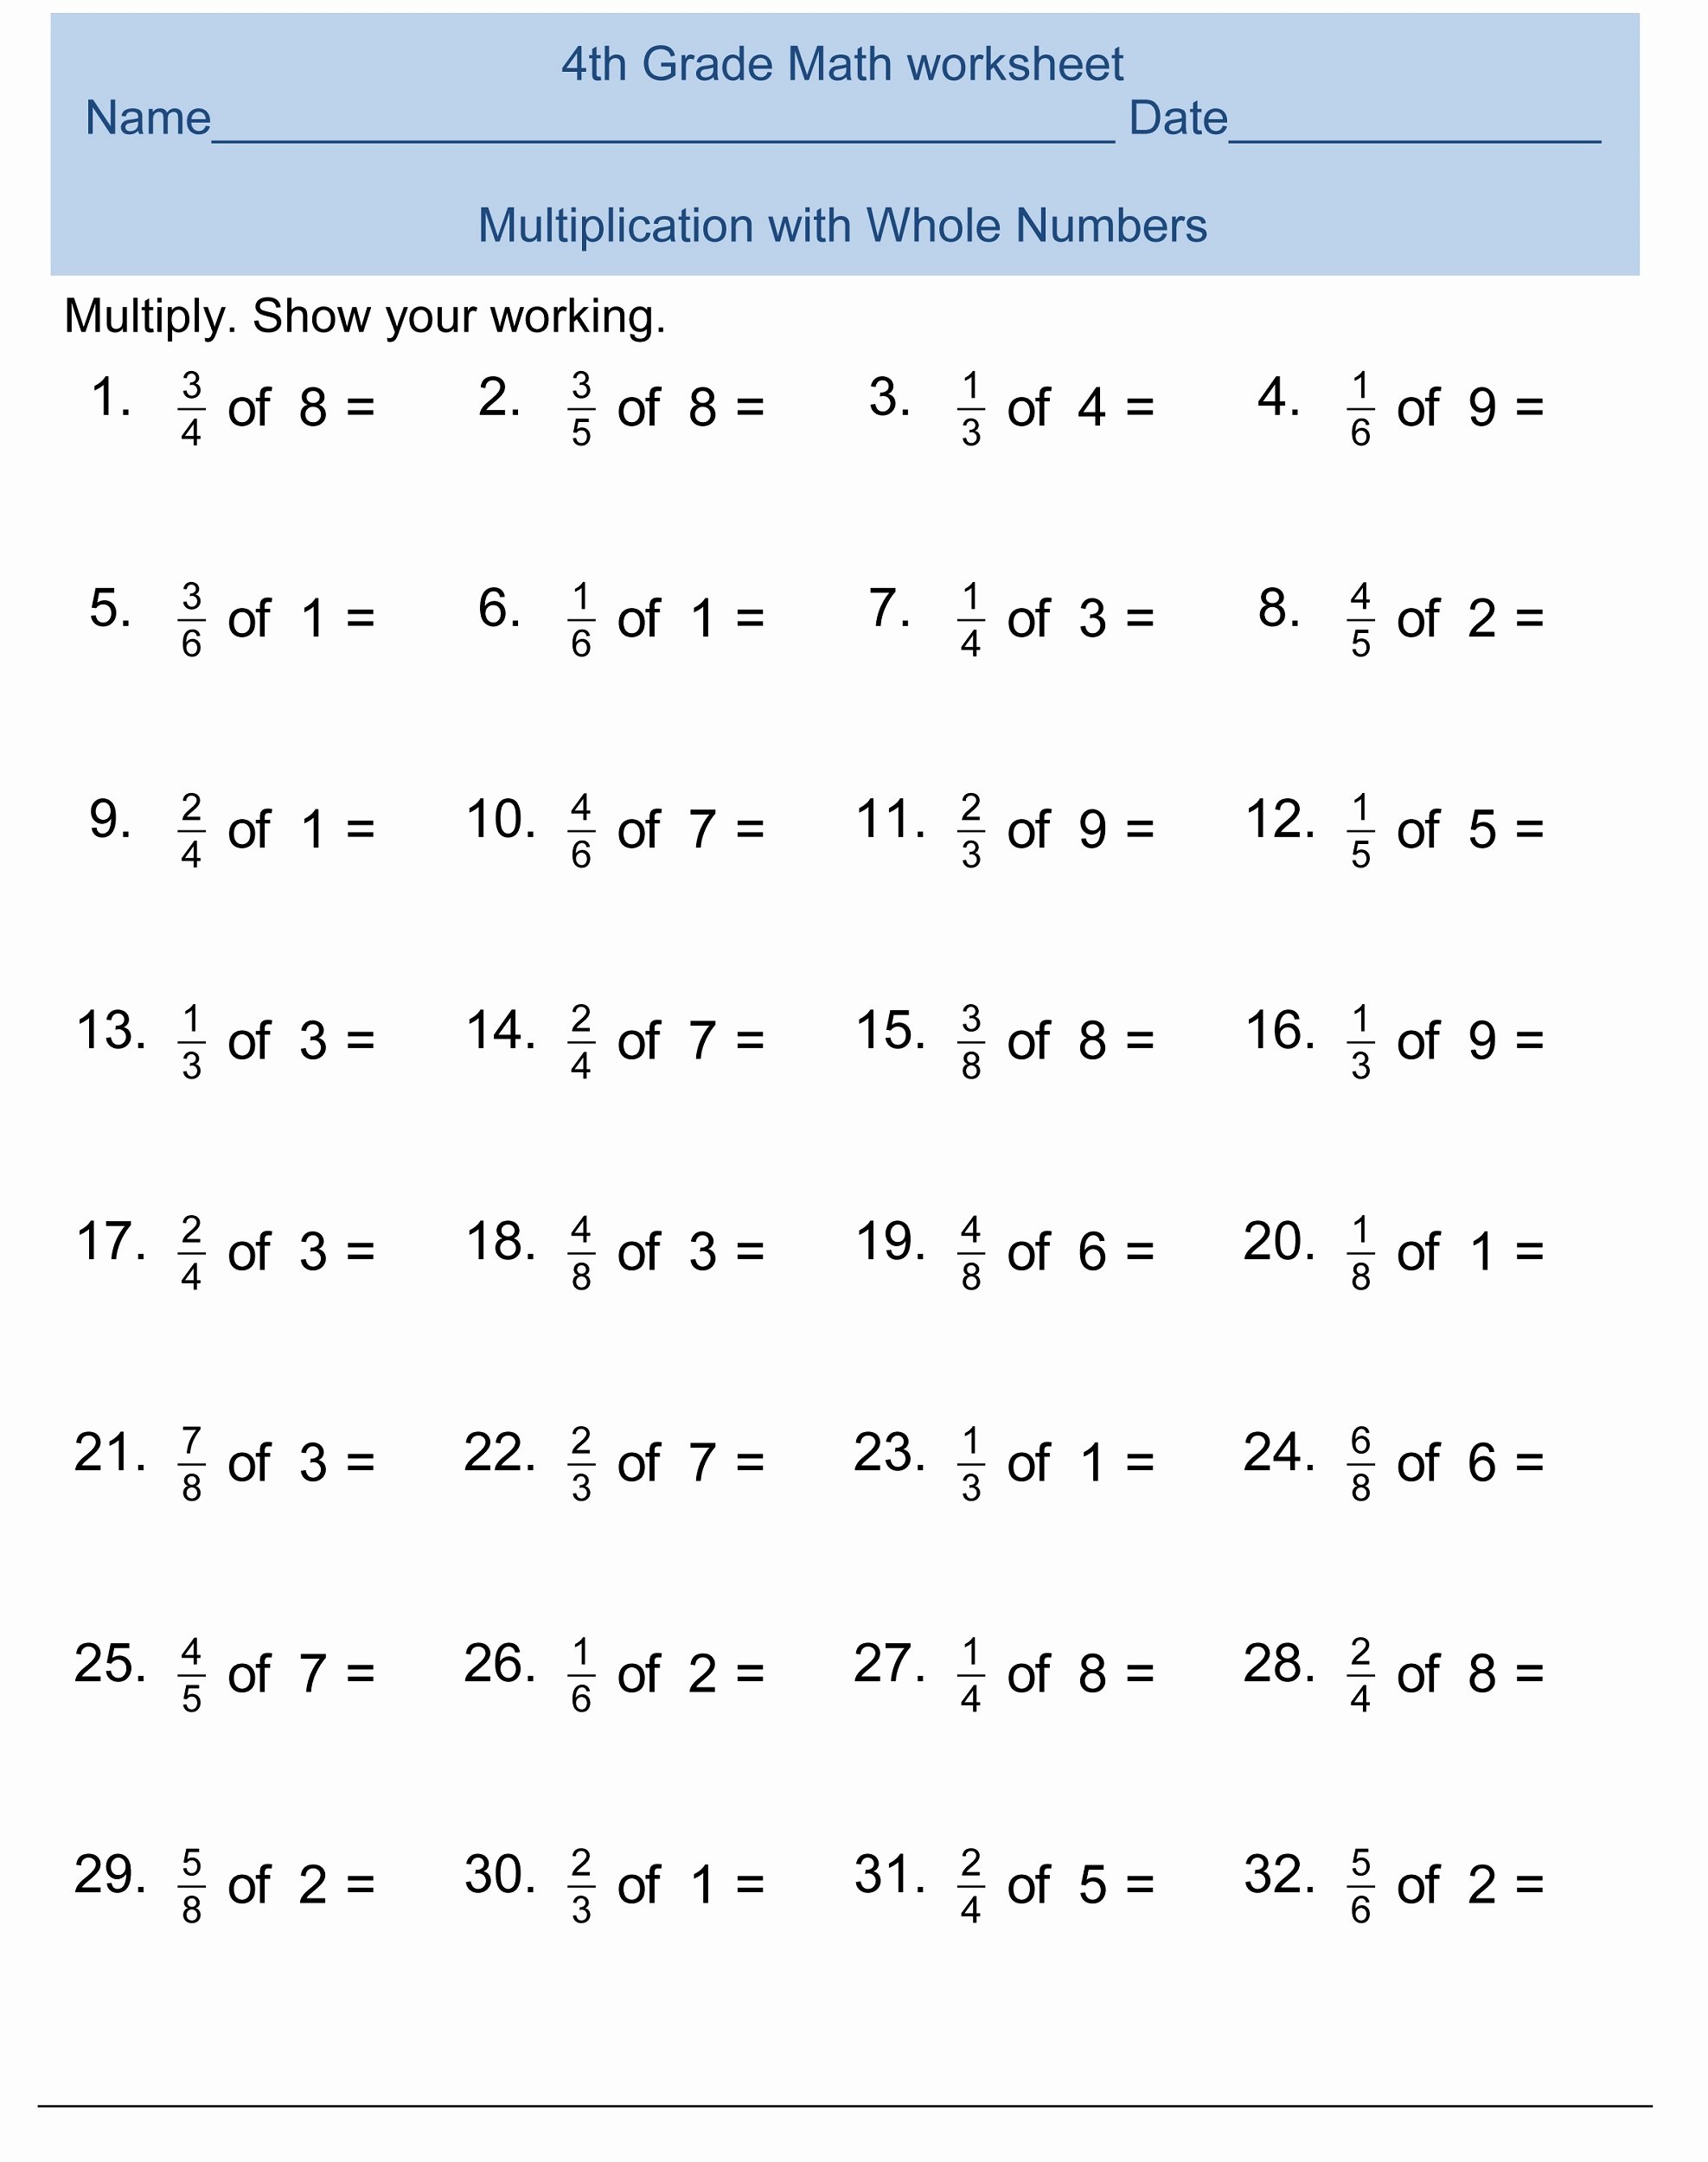 4th Grade Multiplication Worksheets Unique Free 4th Grade Math Worksheets Activity Shelter Fourth